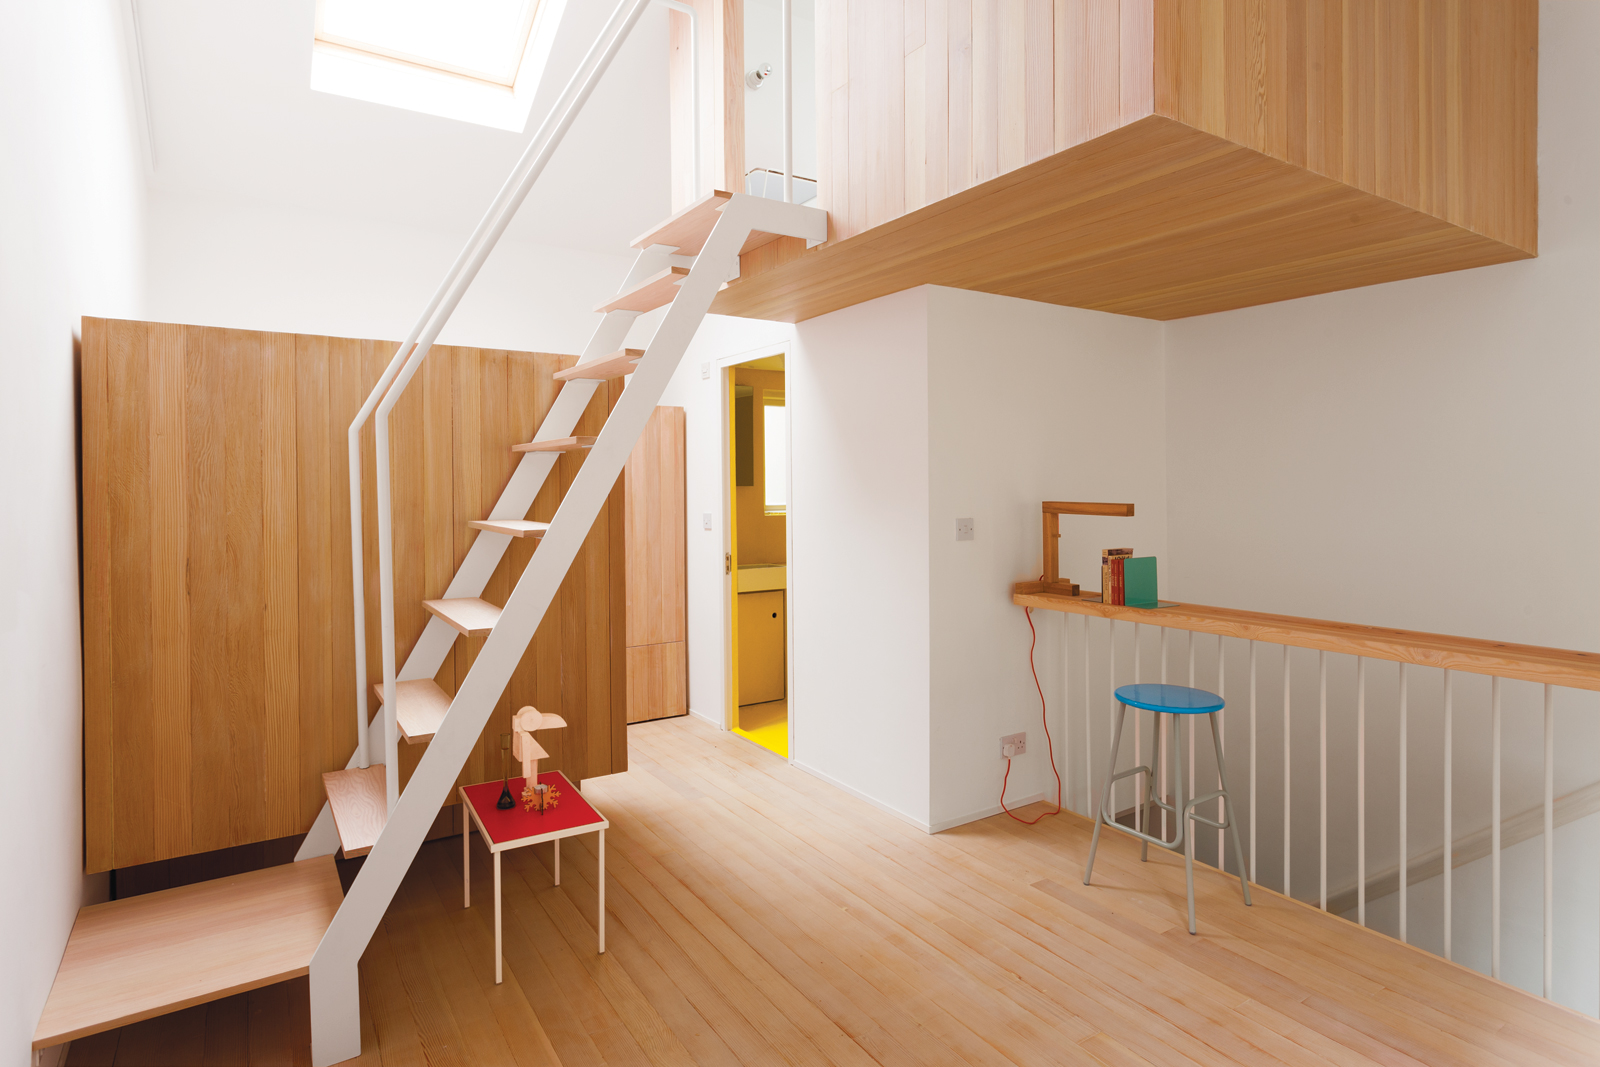 Modern bed pod staircase area with wooden flooring